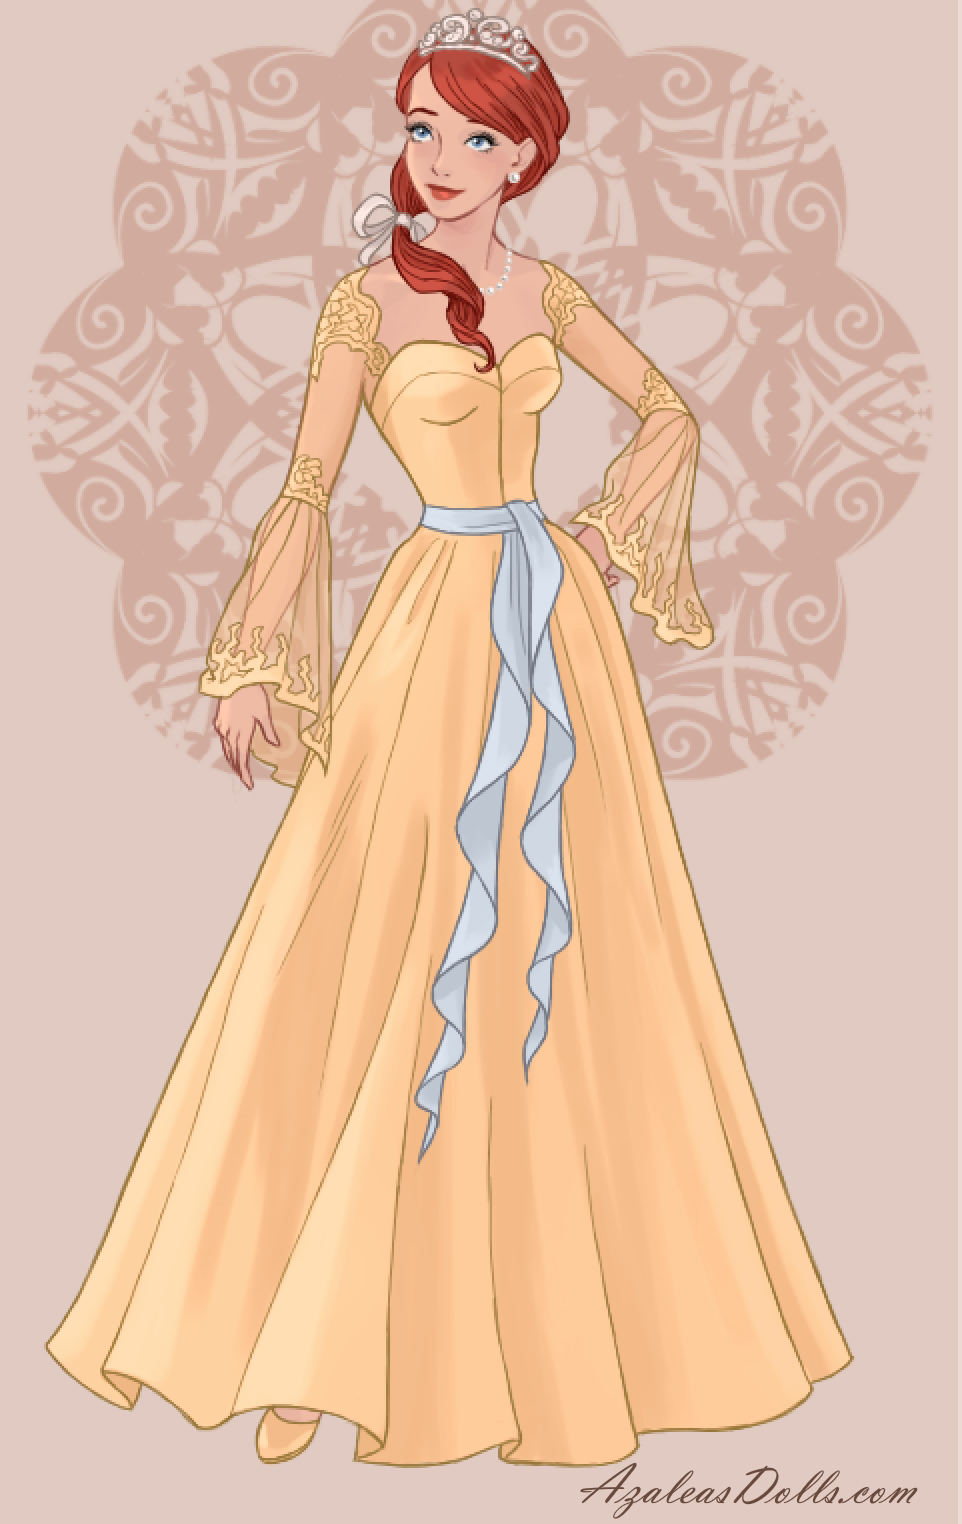 Princess Anastasia In Wedding Dress Design Dress Up Game Disney Princess Fashion Princess Anastasia Disney Anastasia